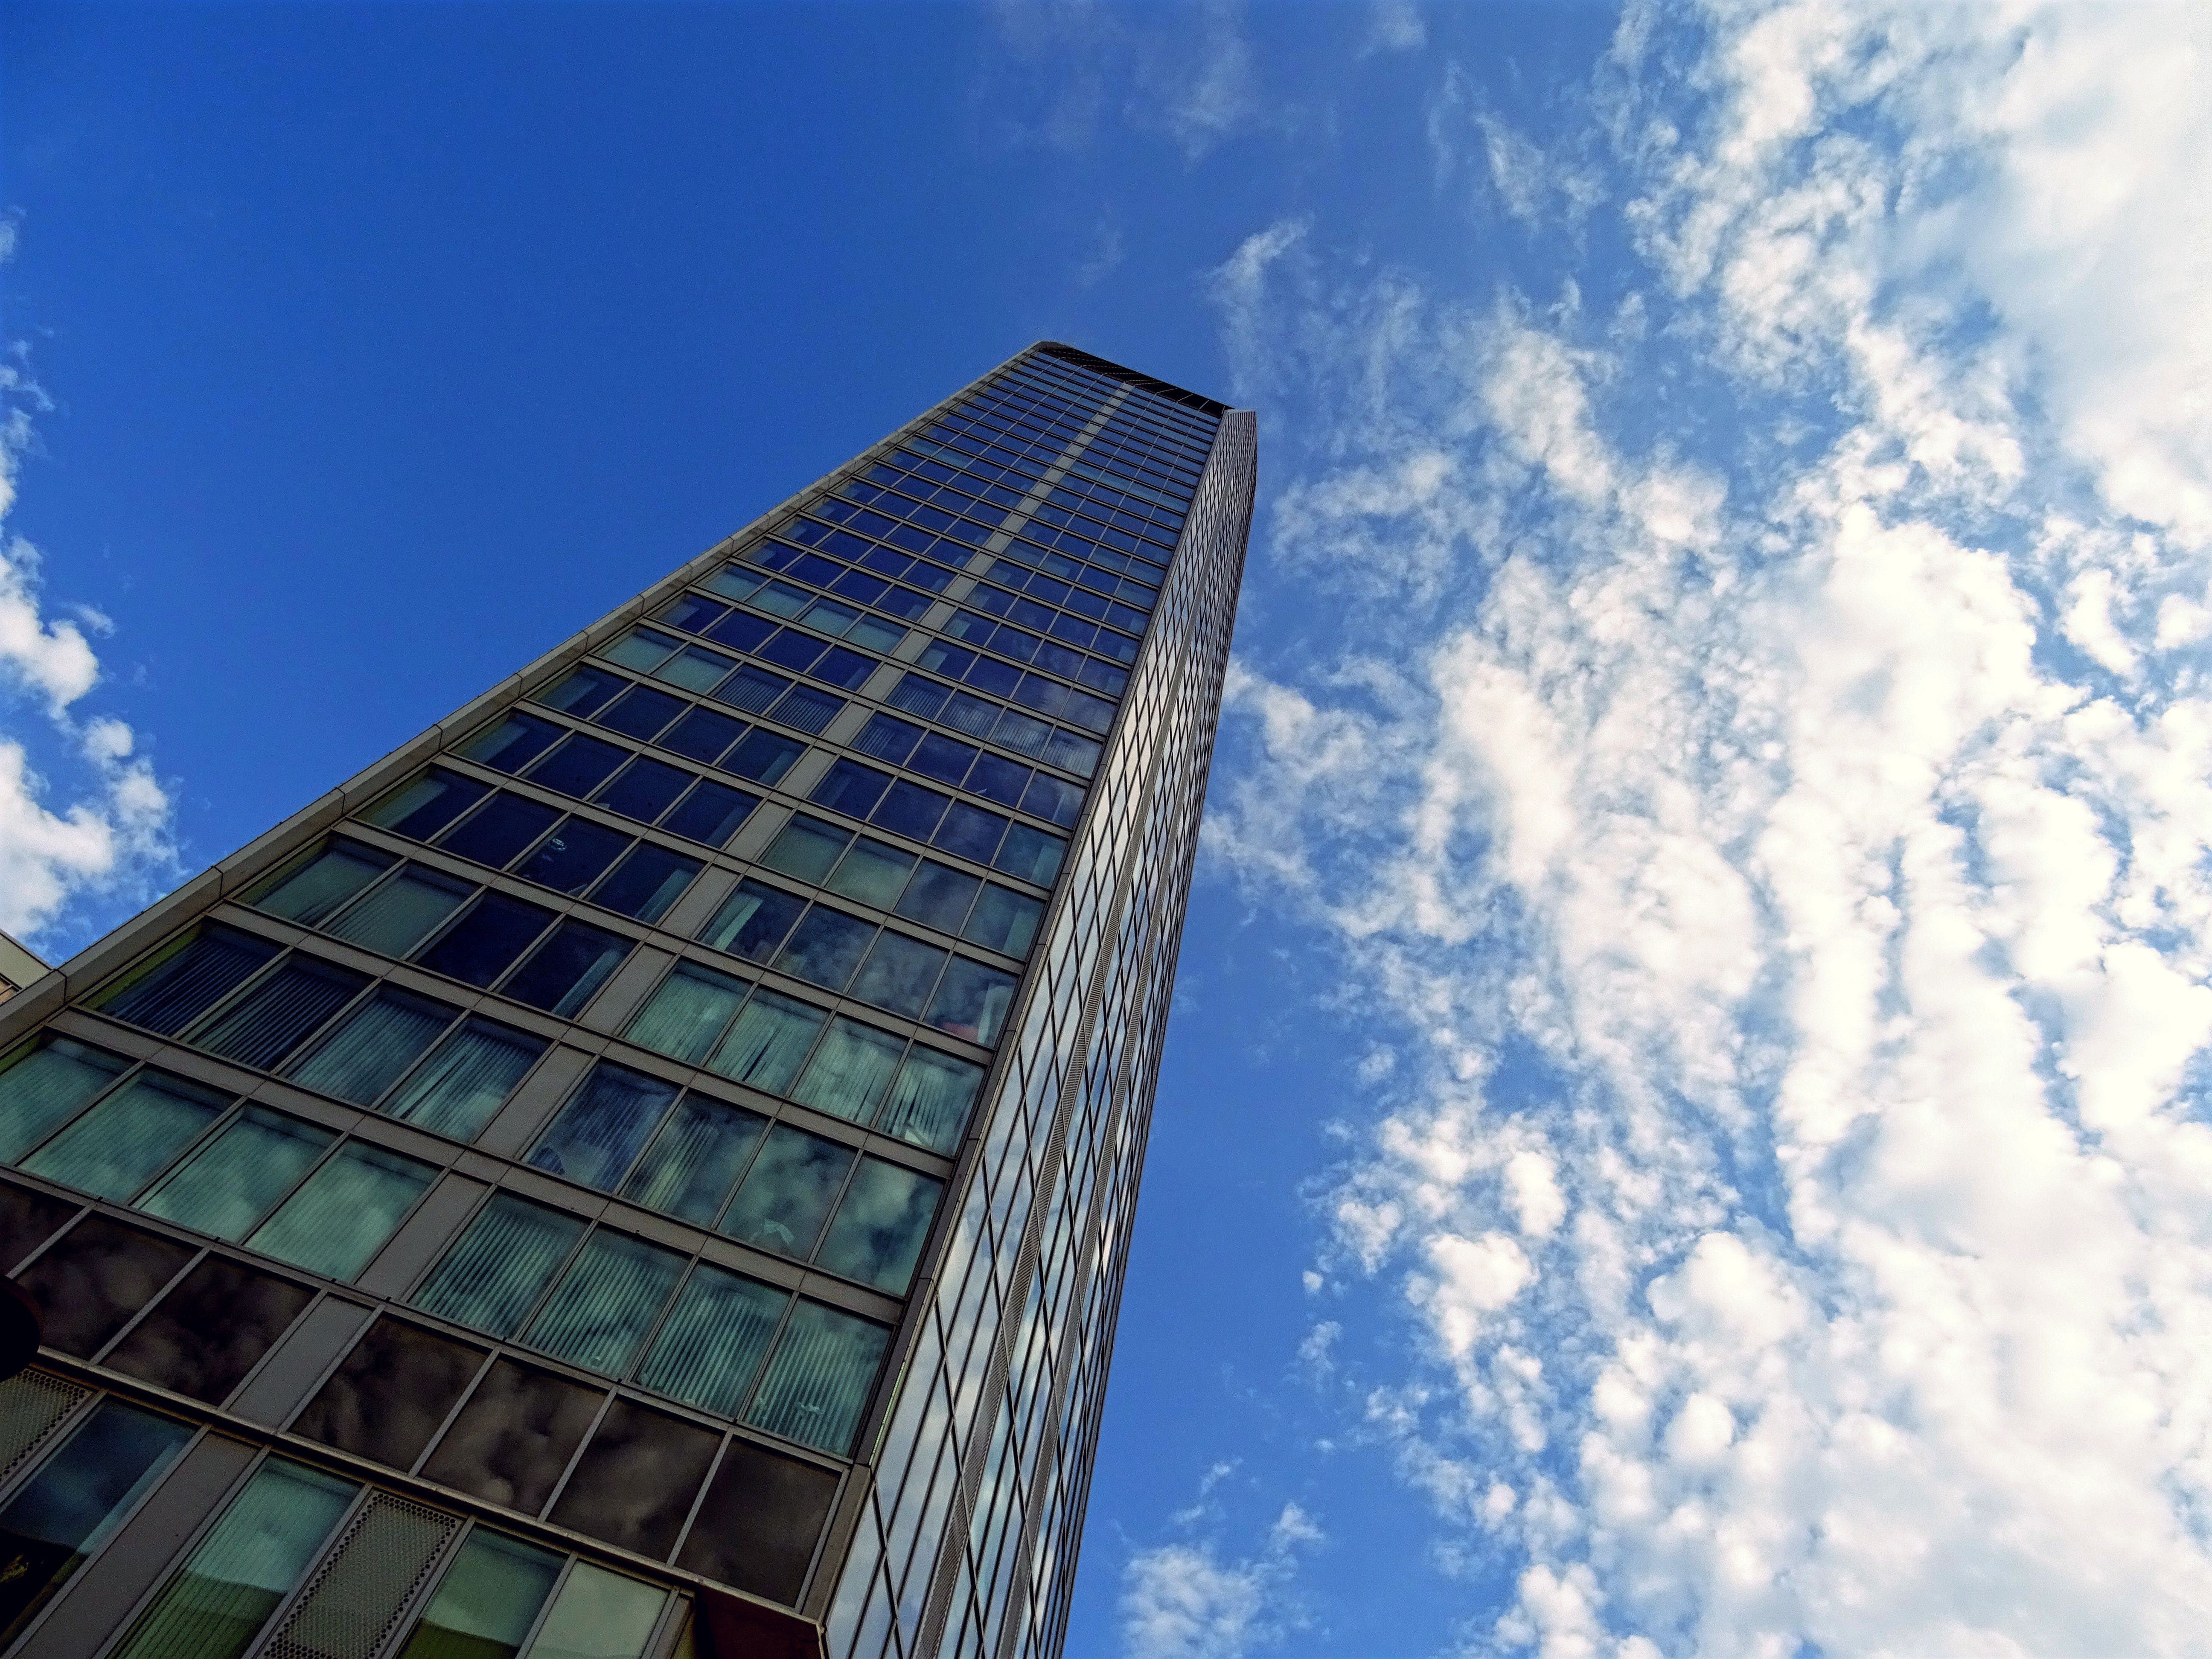 Low Angle Photography of Gray High-rise Building